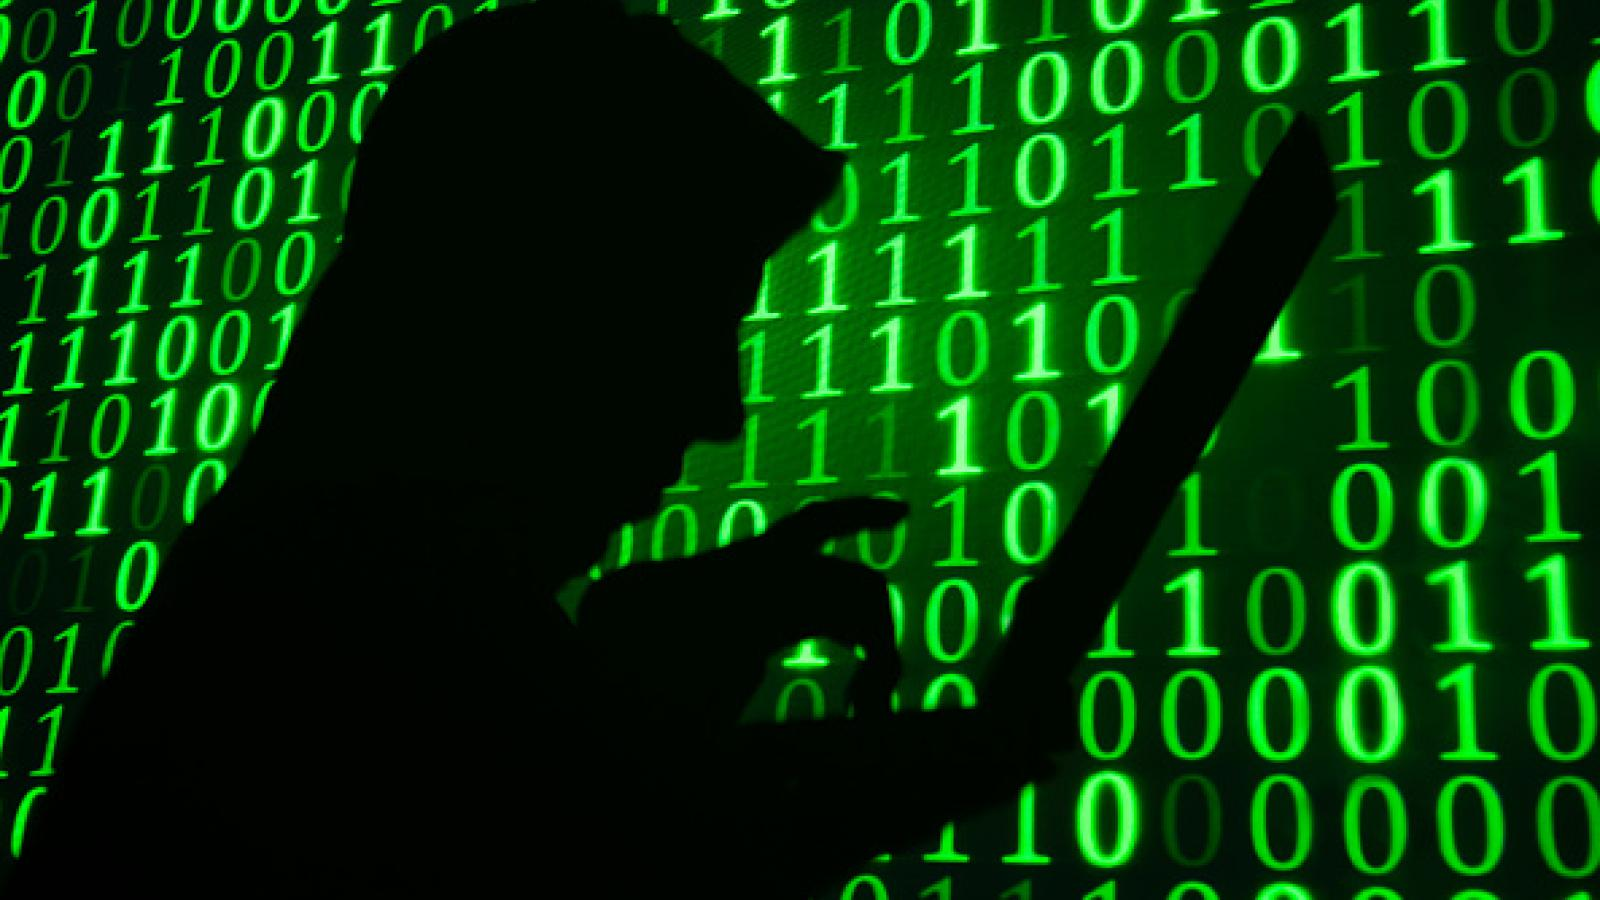 Silhouette of a computer hacker